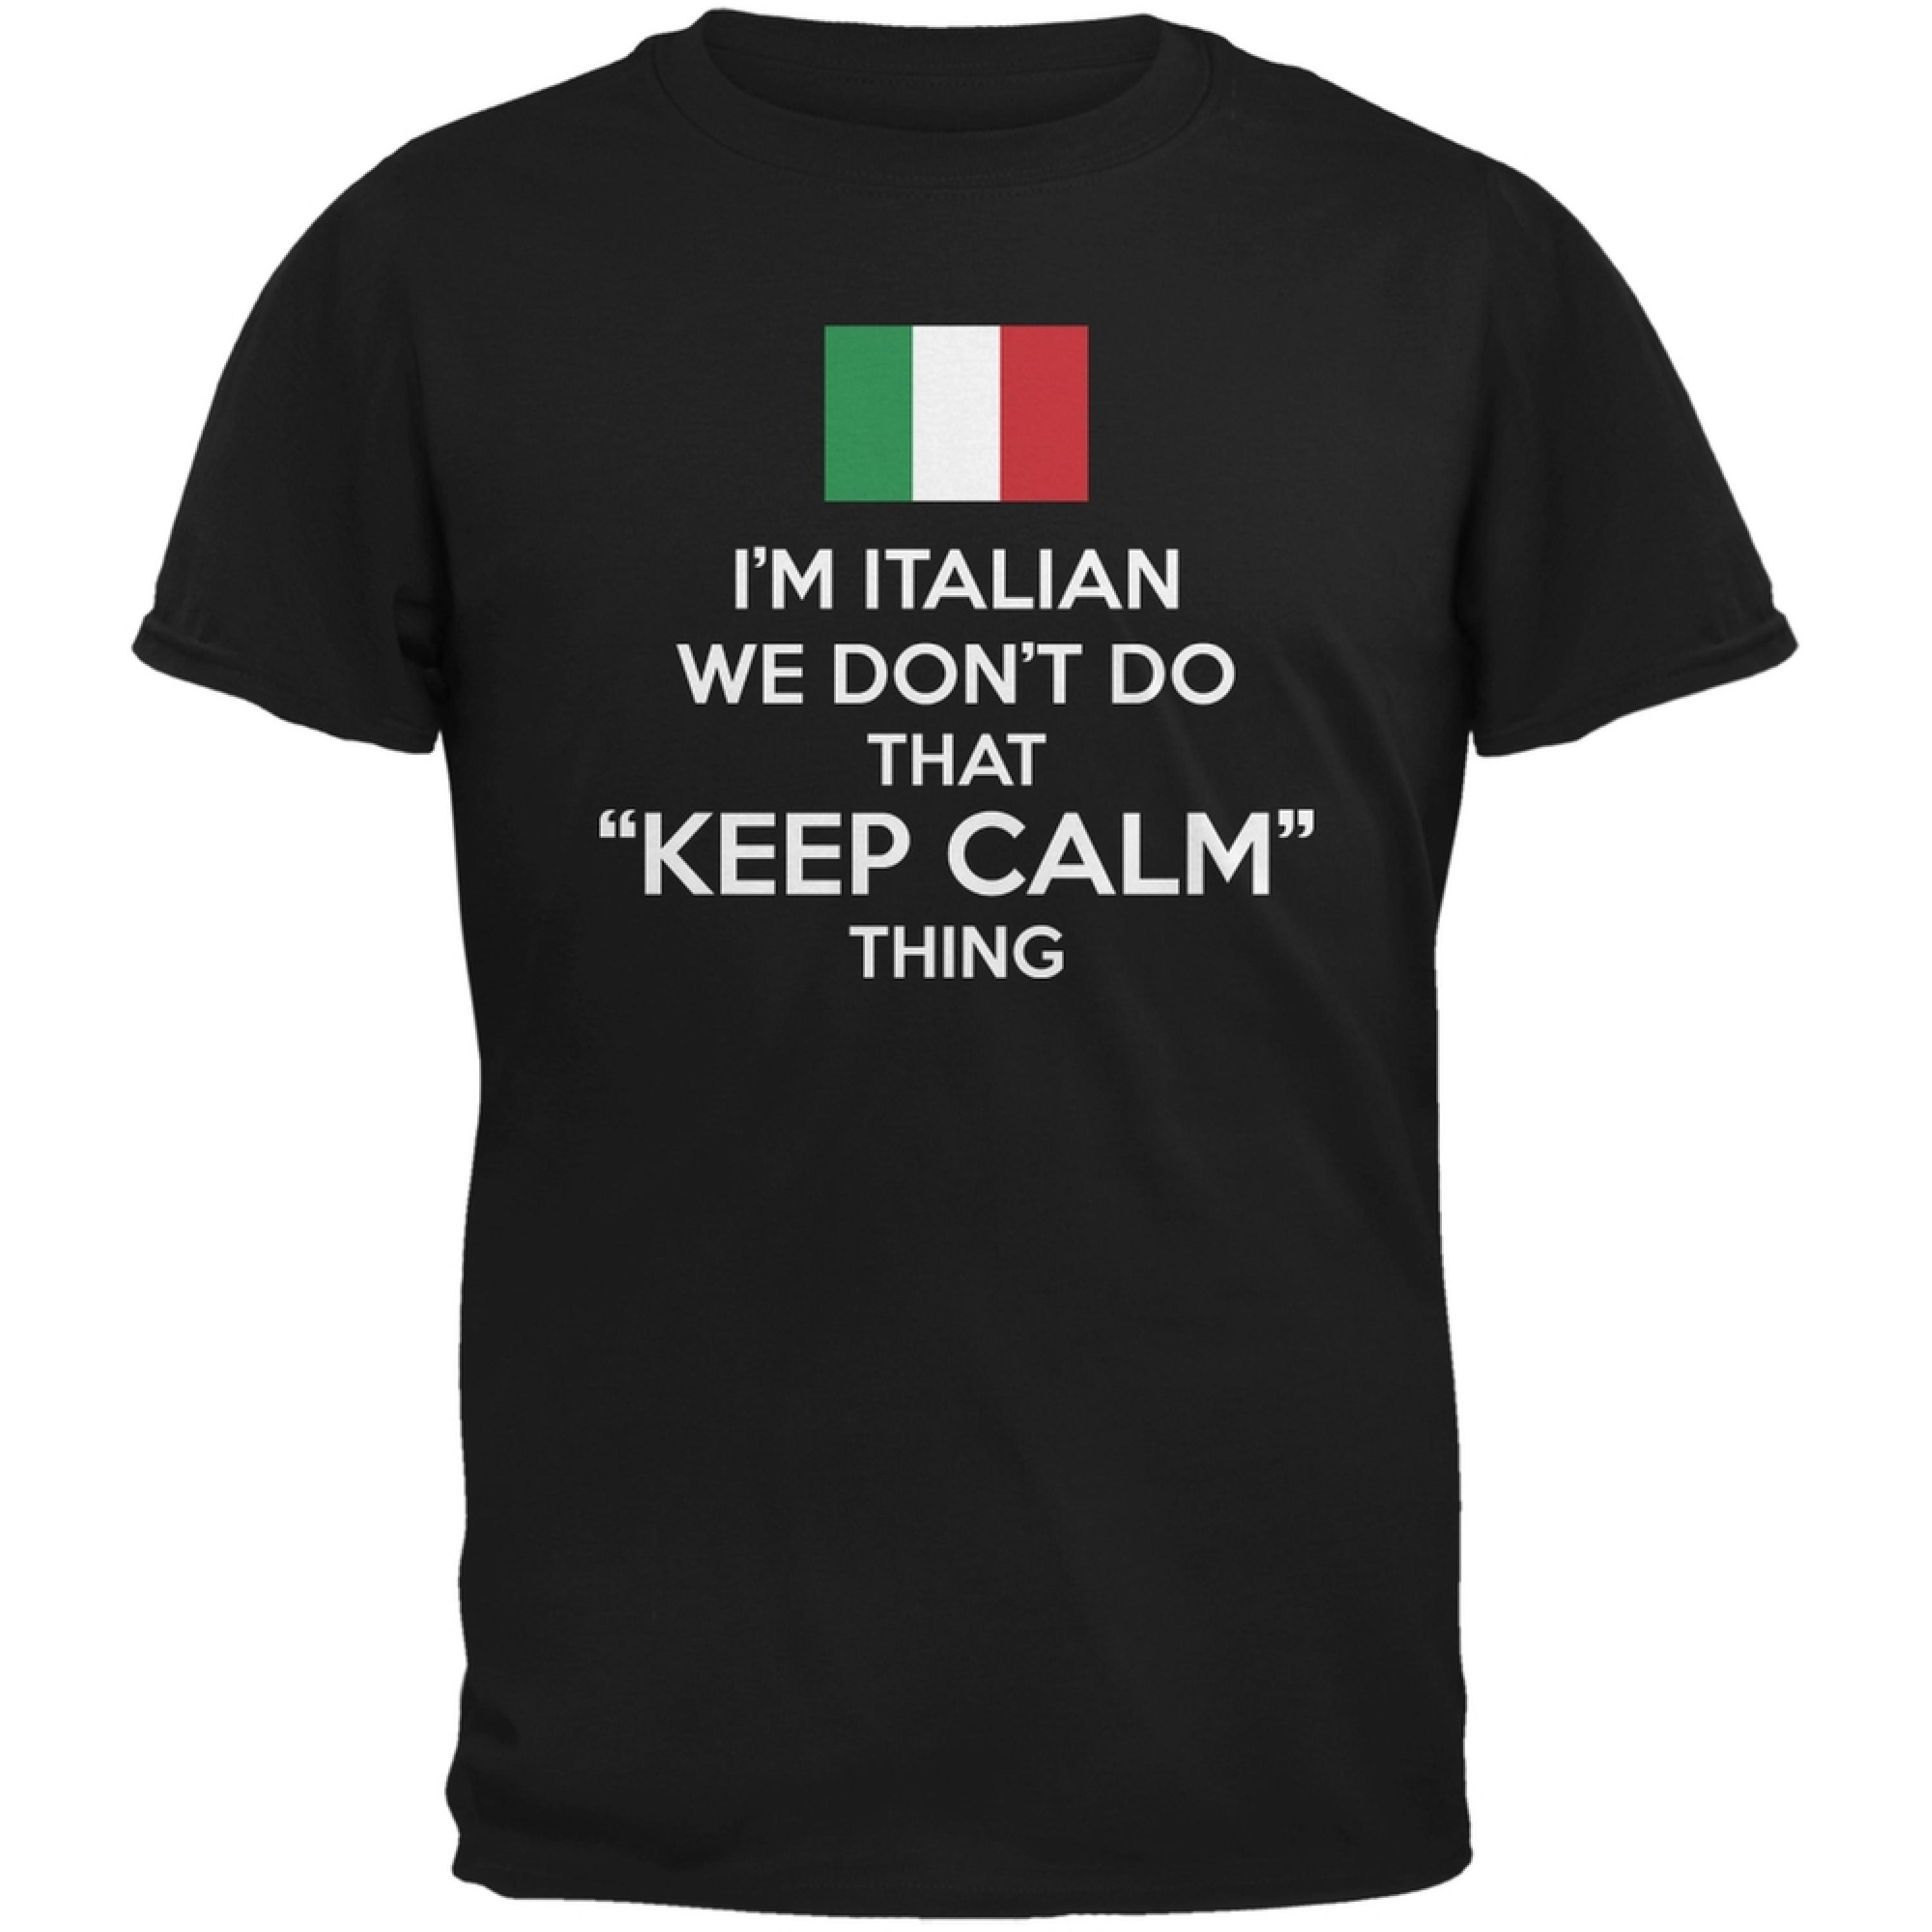 Don't Do Calm - Italian Black Adult T-Shirt